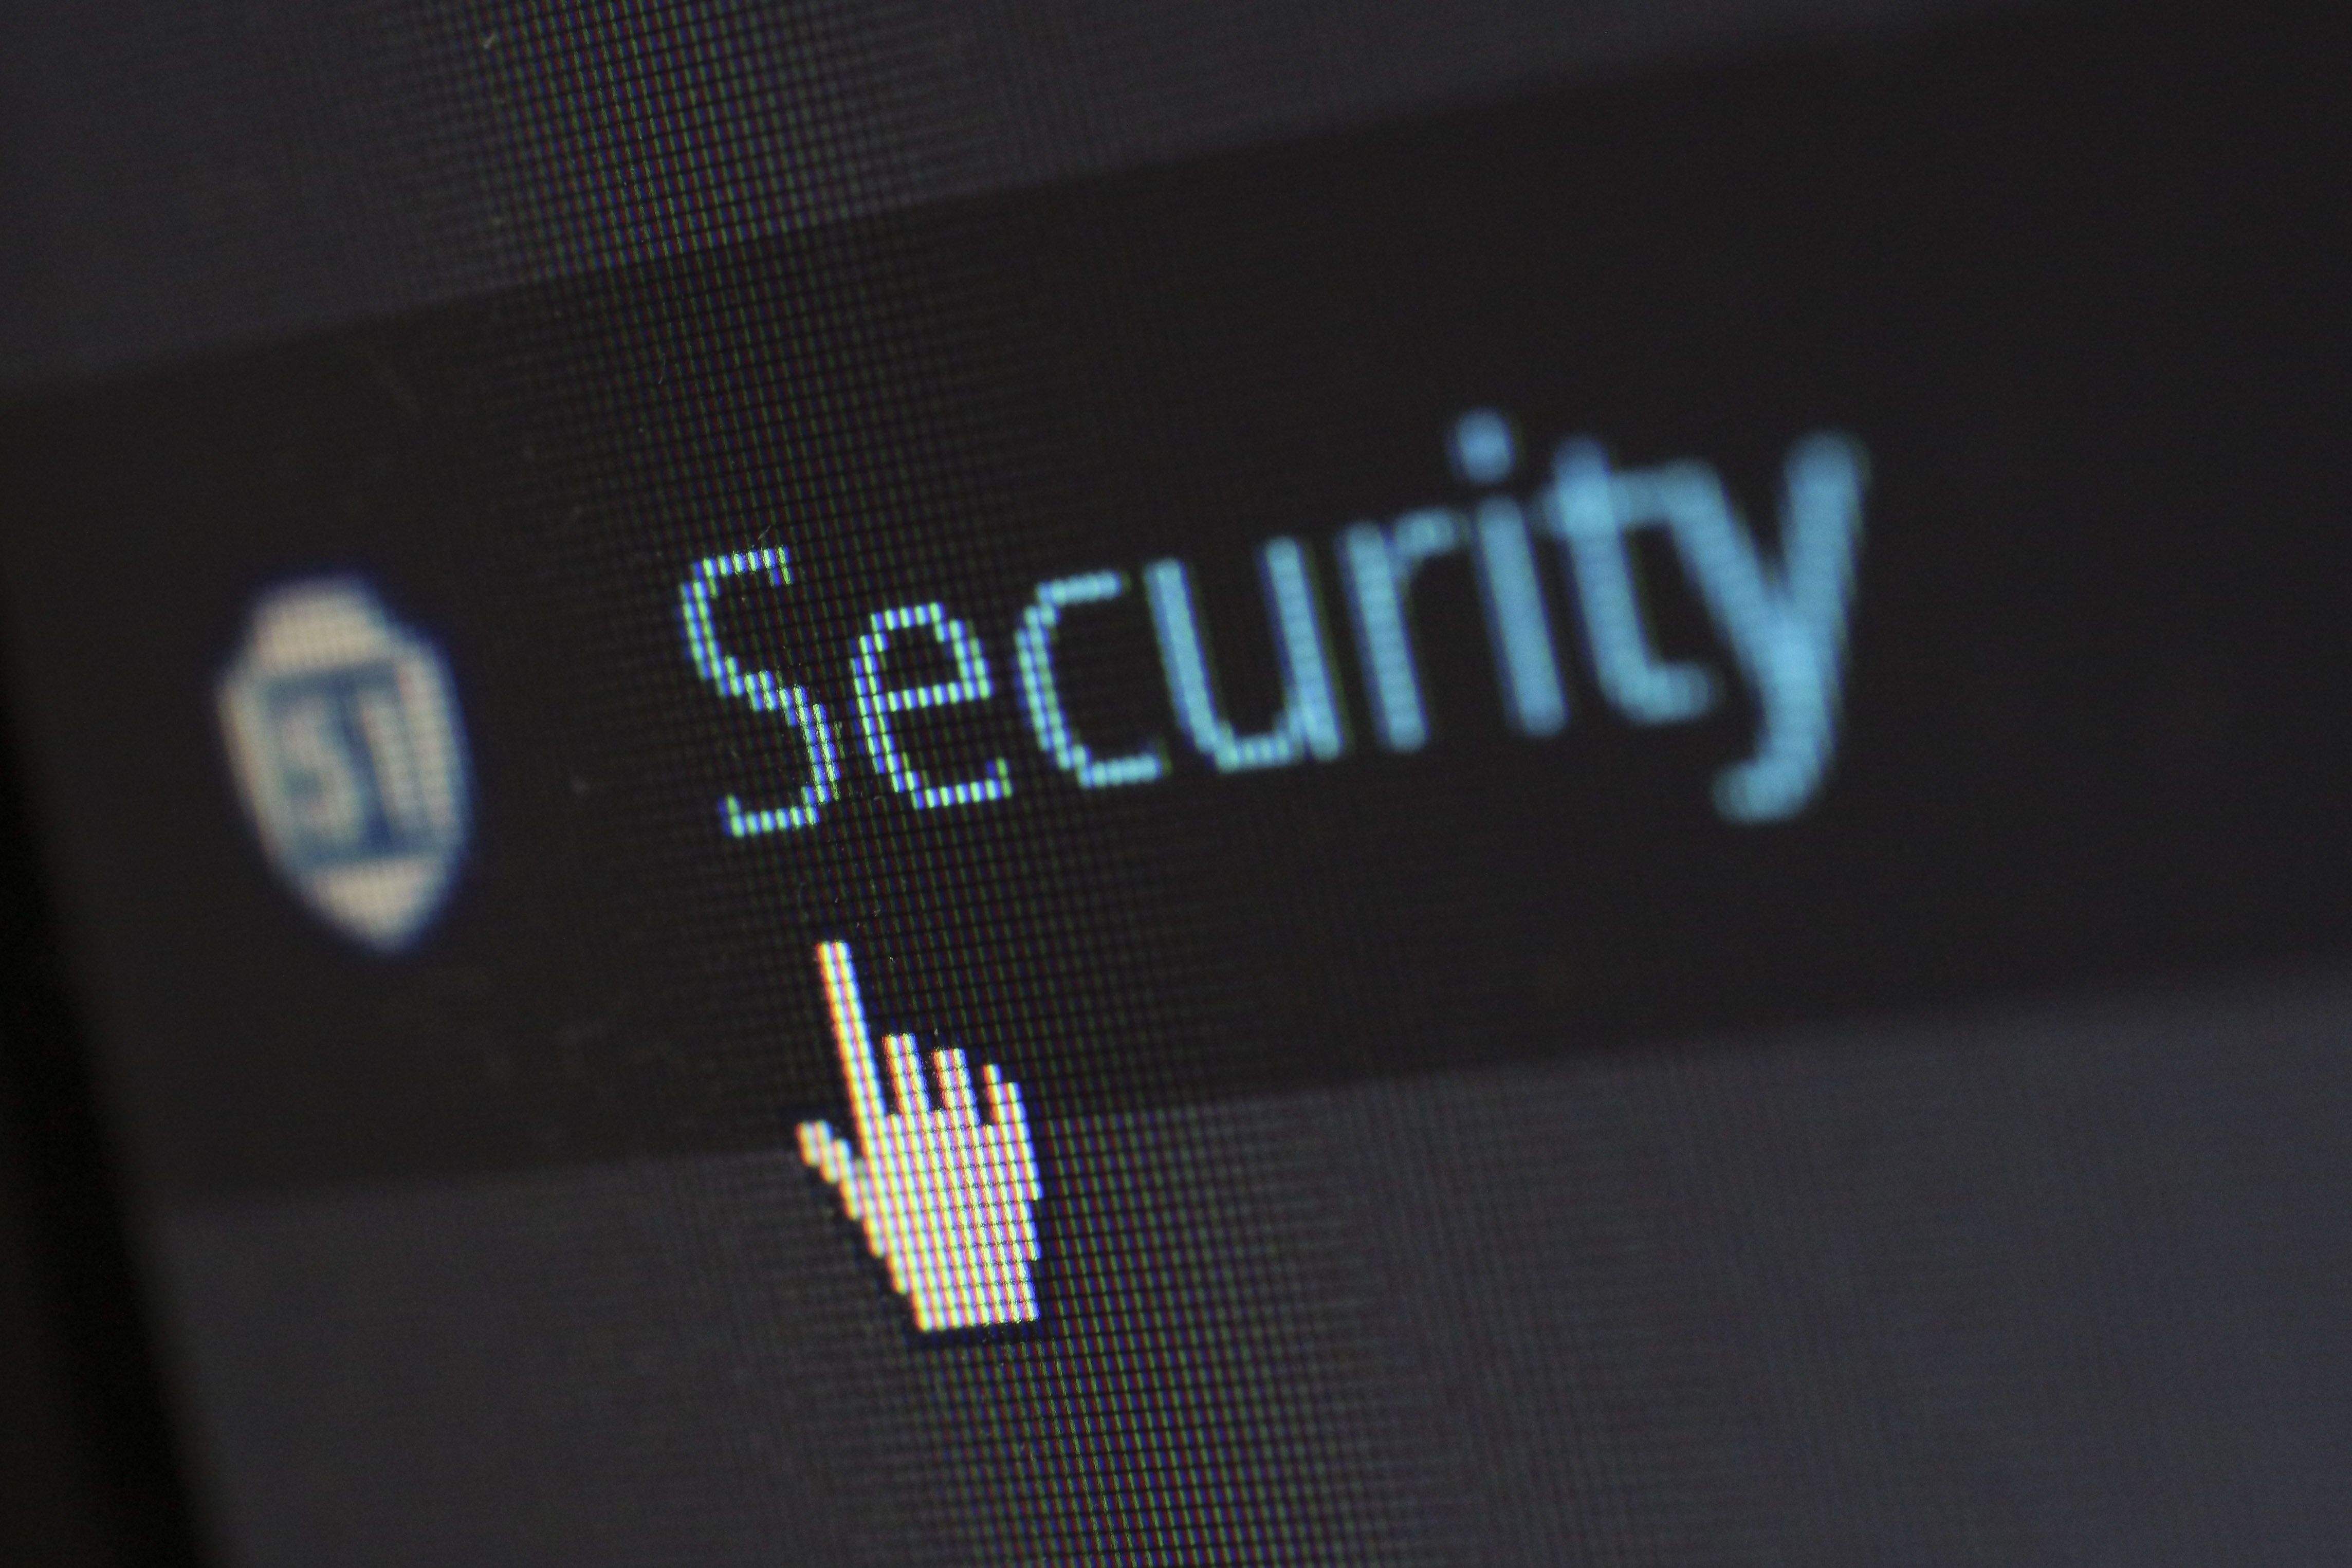 How To Prevent Data Theft With Cybersecurity